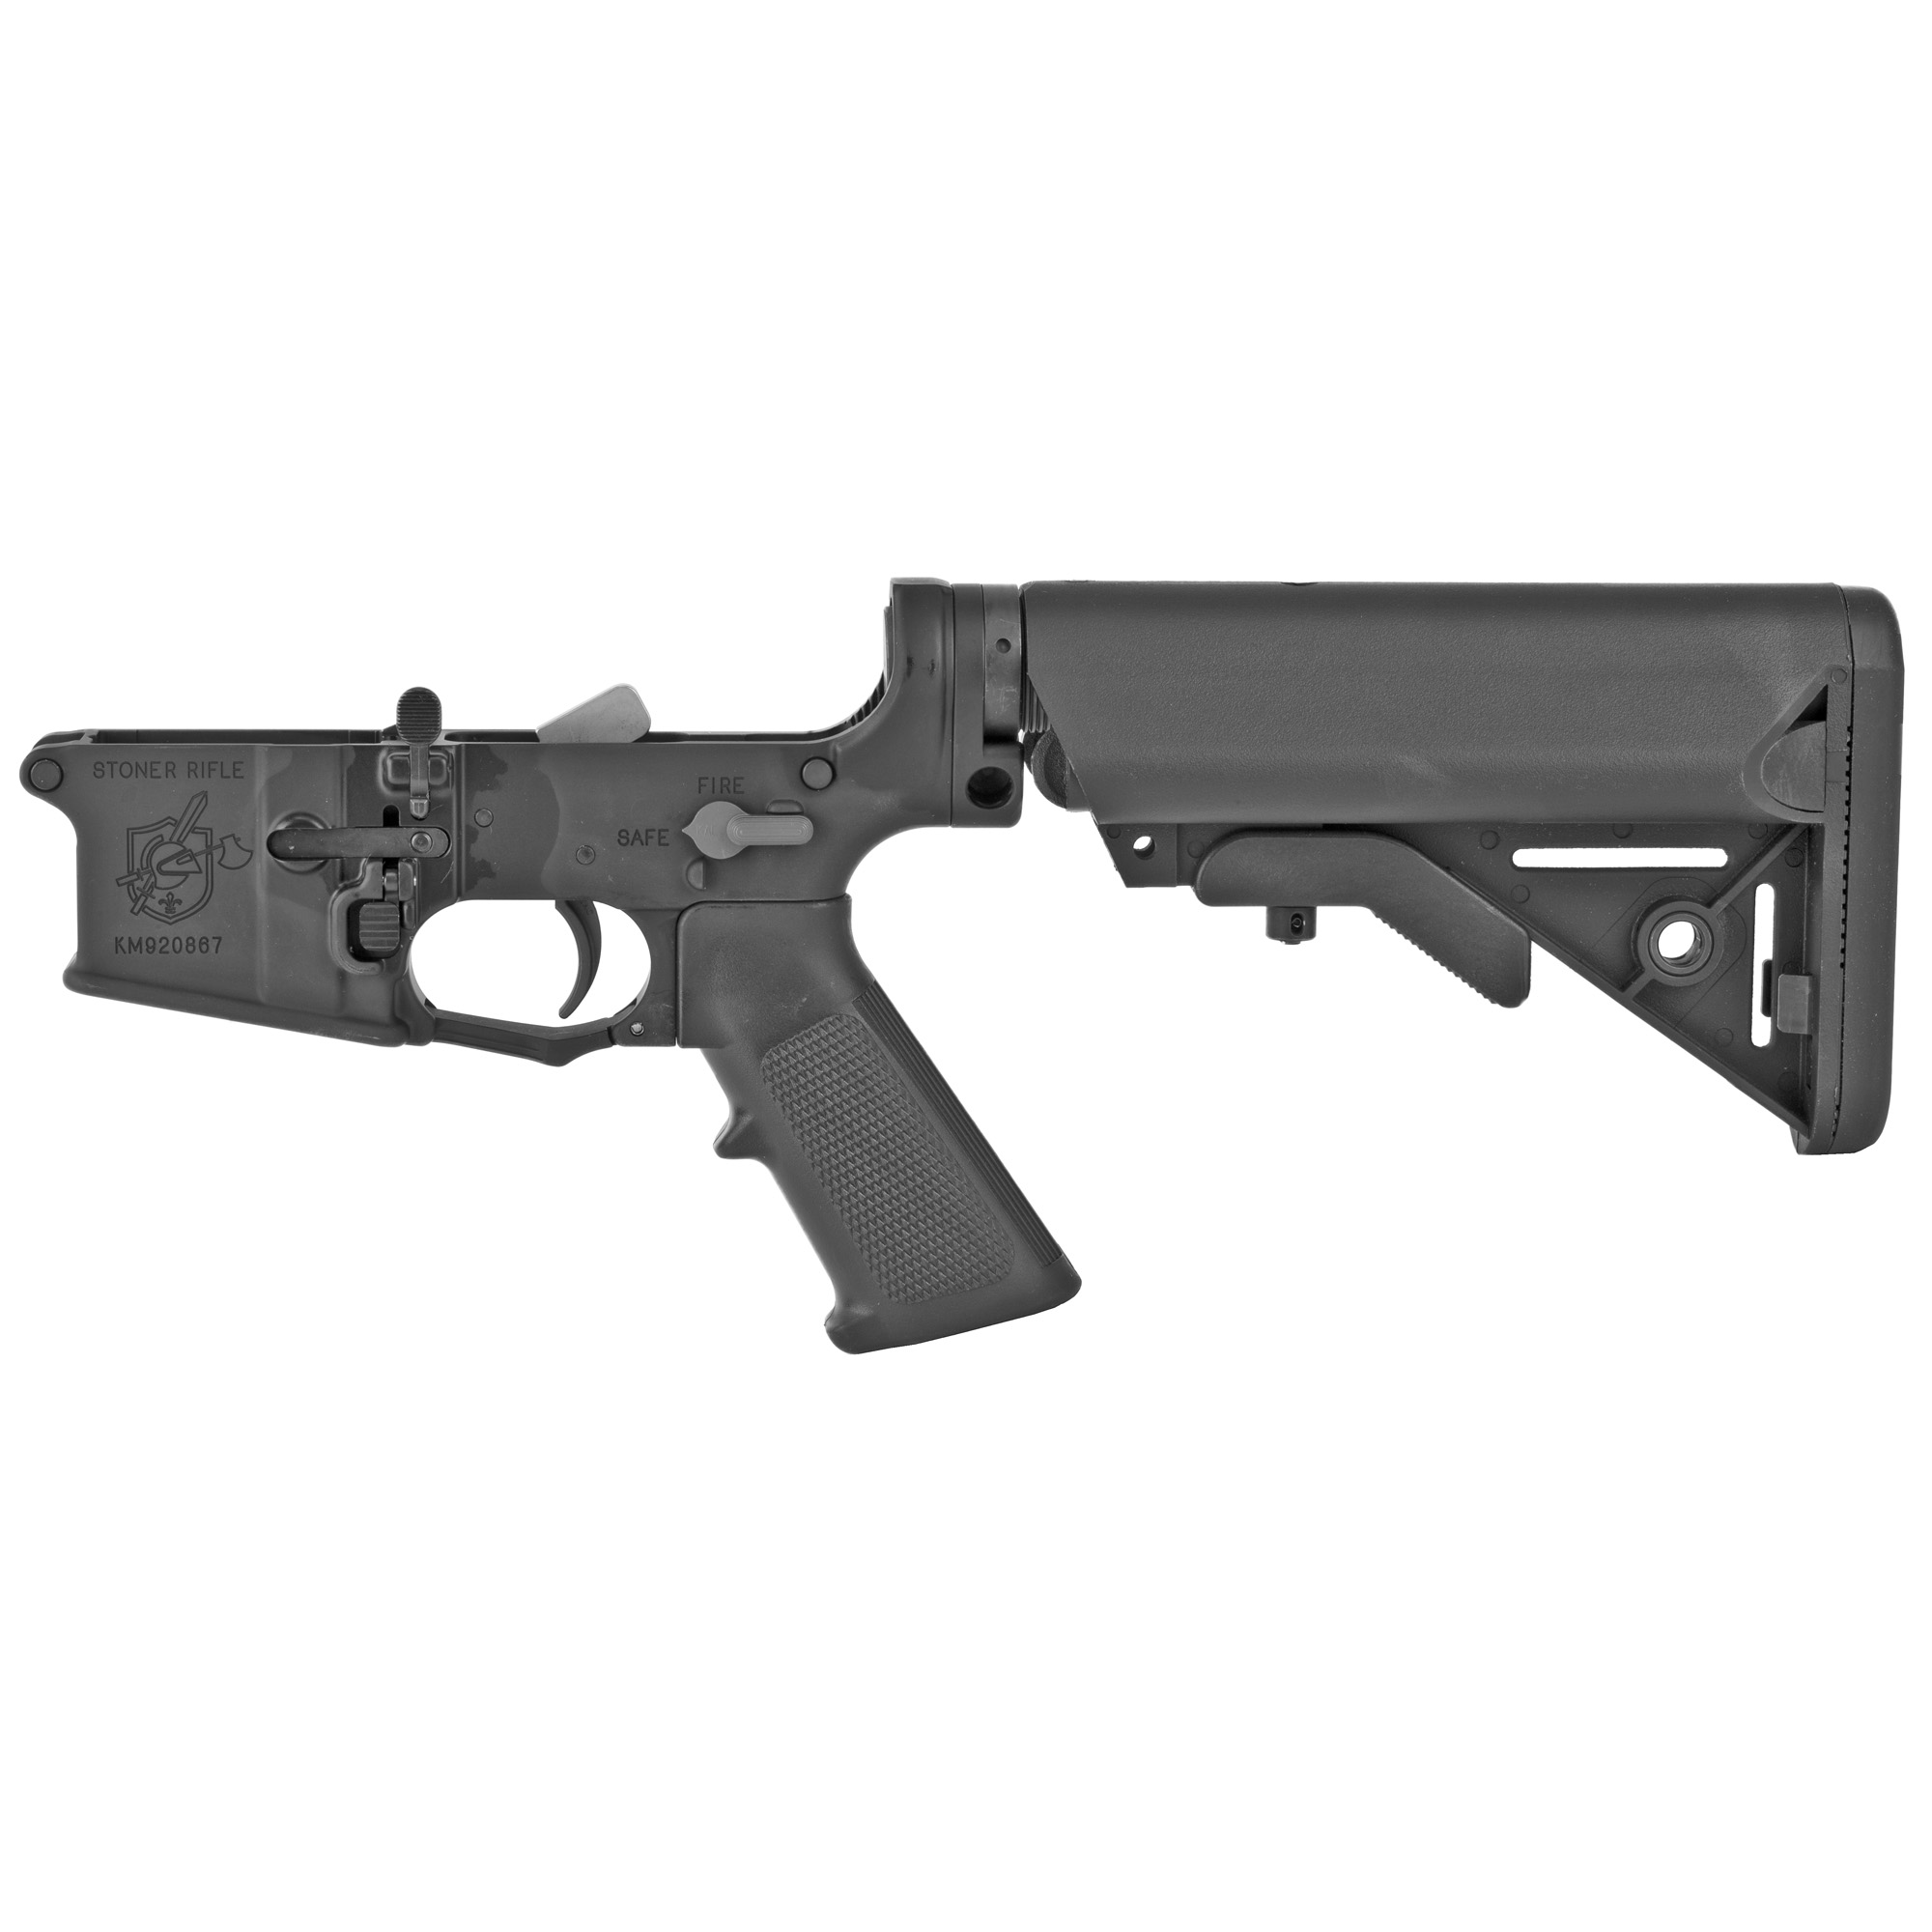 The Knight's Armament SR-30 IWS Complete Lower Receiver comes with with a SopMod stock and ambidextrous controls.